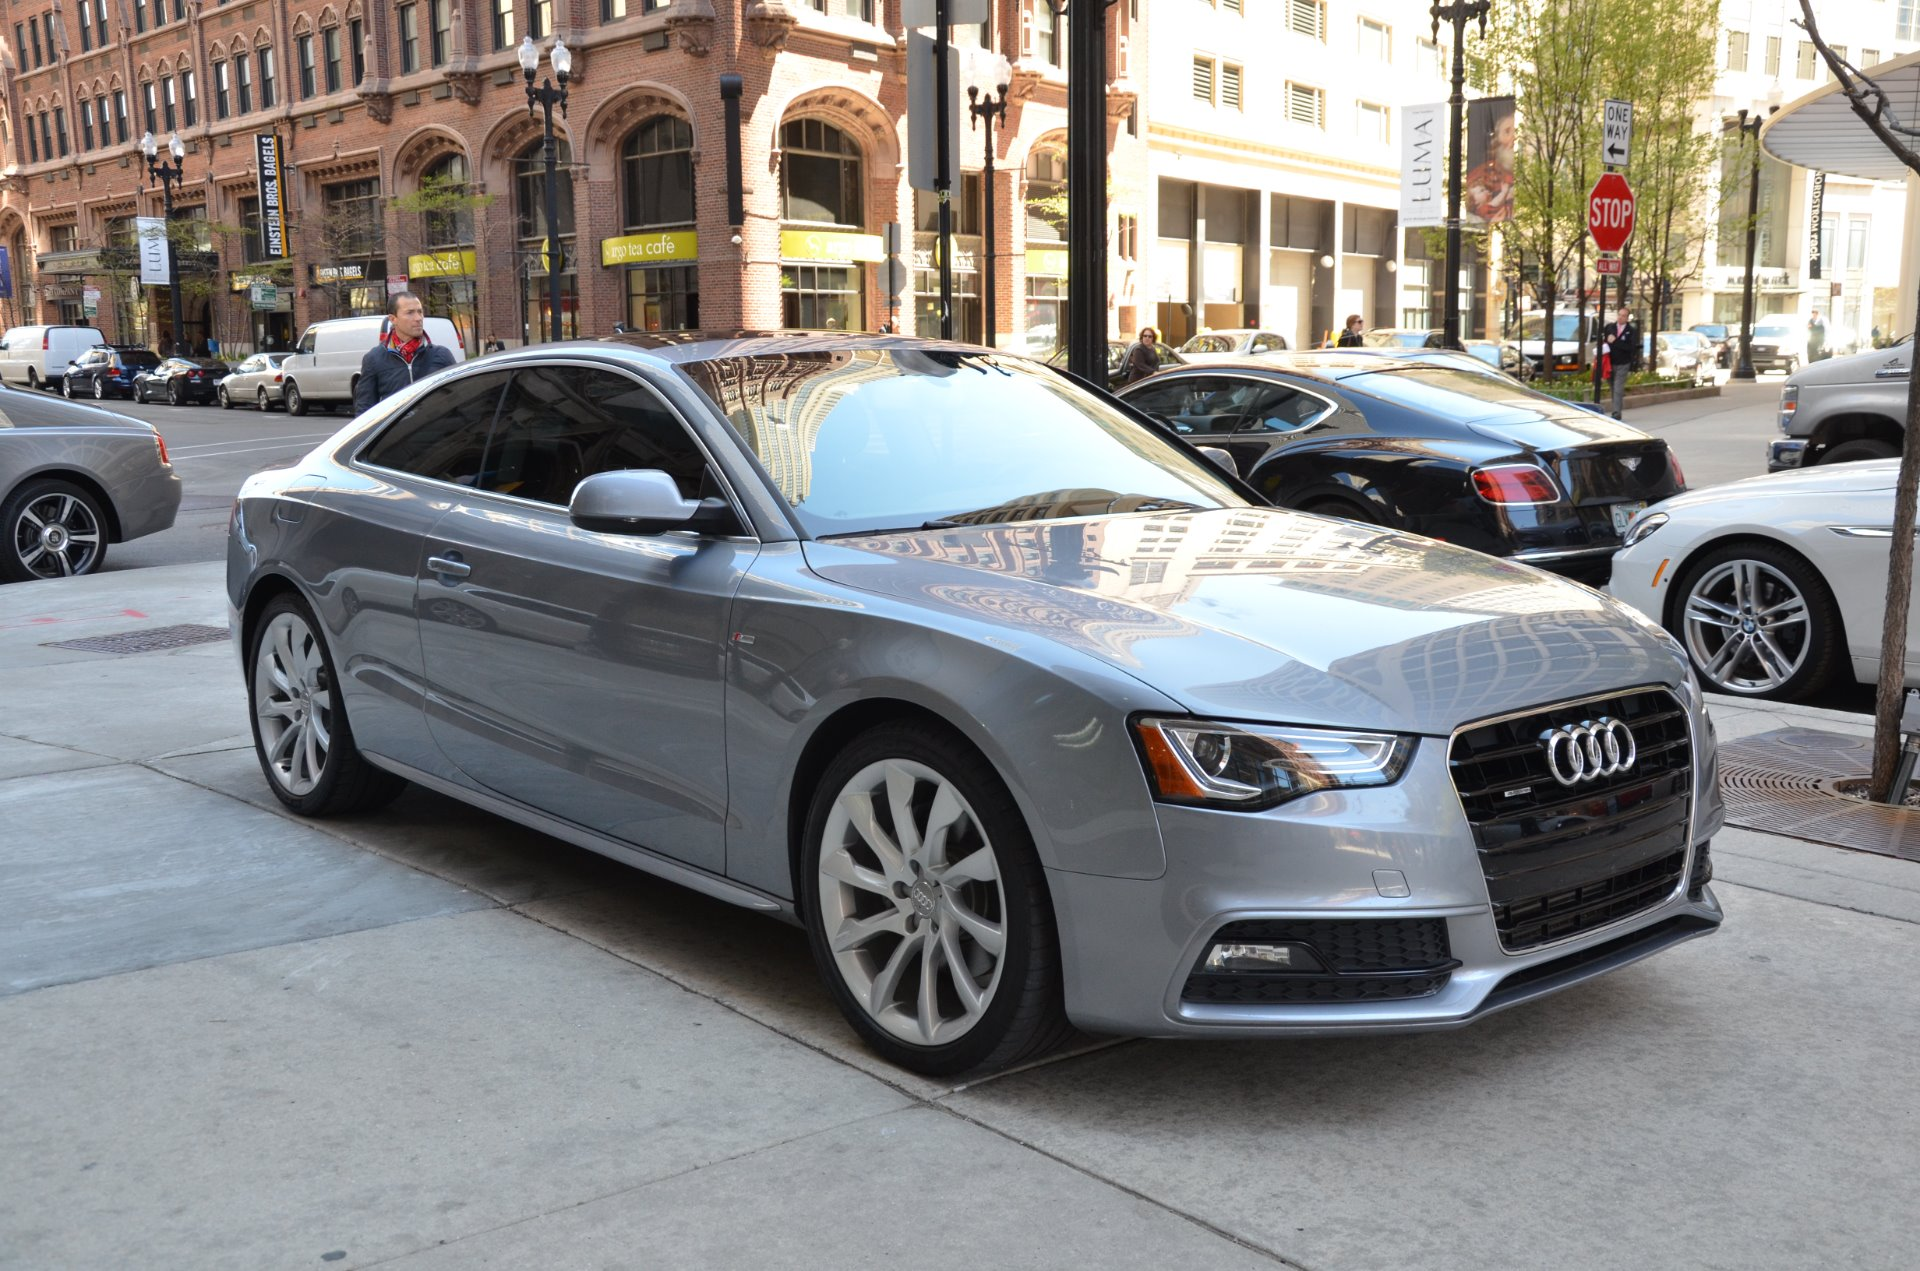 2015 audi a5 2 0t quattro premium plus stock l141aa for sale near chicago il il audi dealer. Black Bedroom Furniture Sets. Home Design Ideas